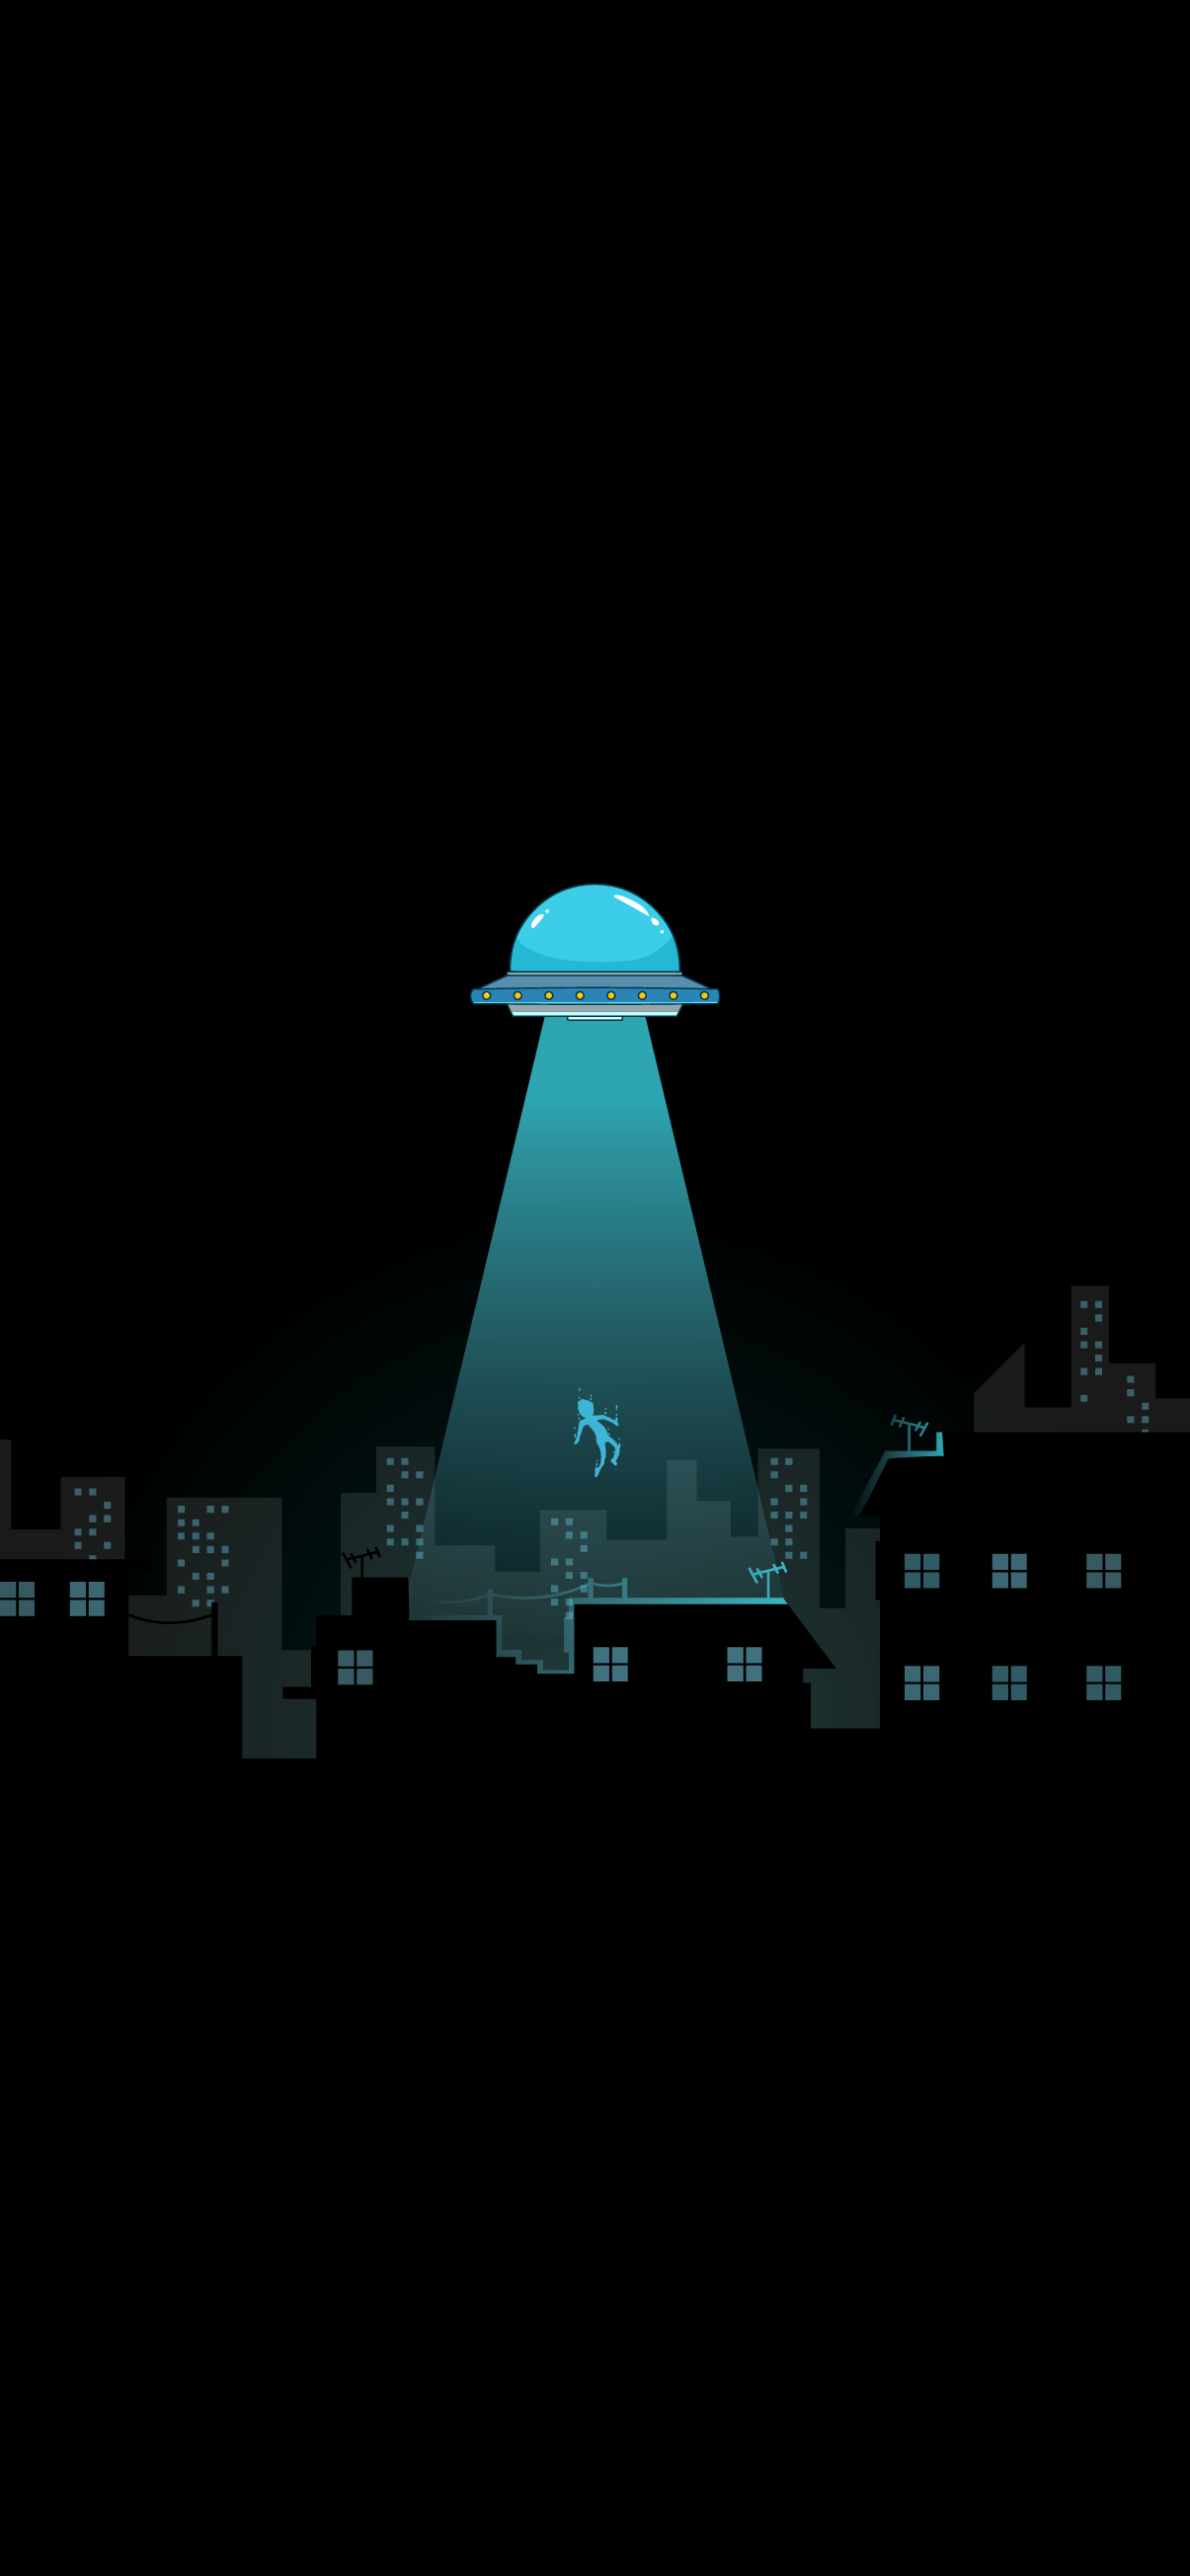 ufo abduction cool amoled black wallpaper 4k